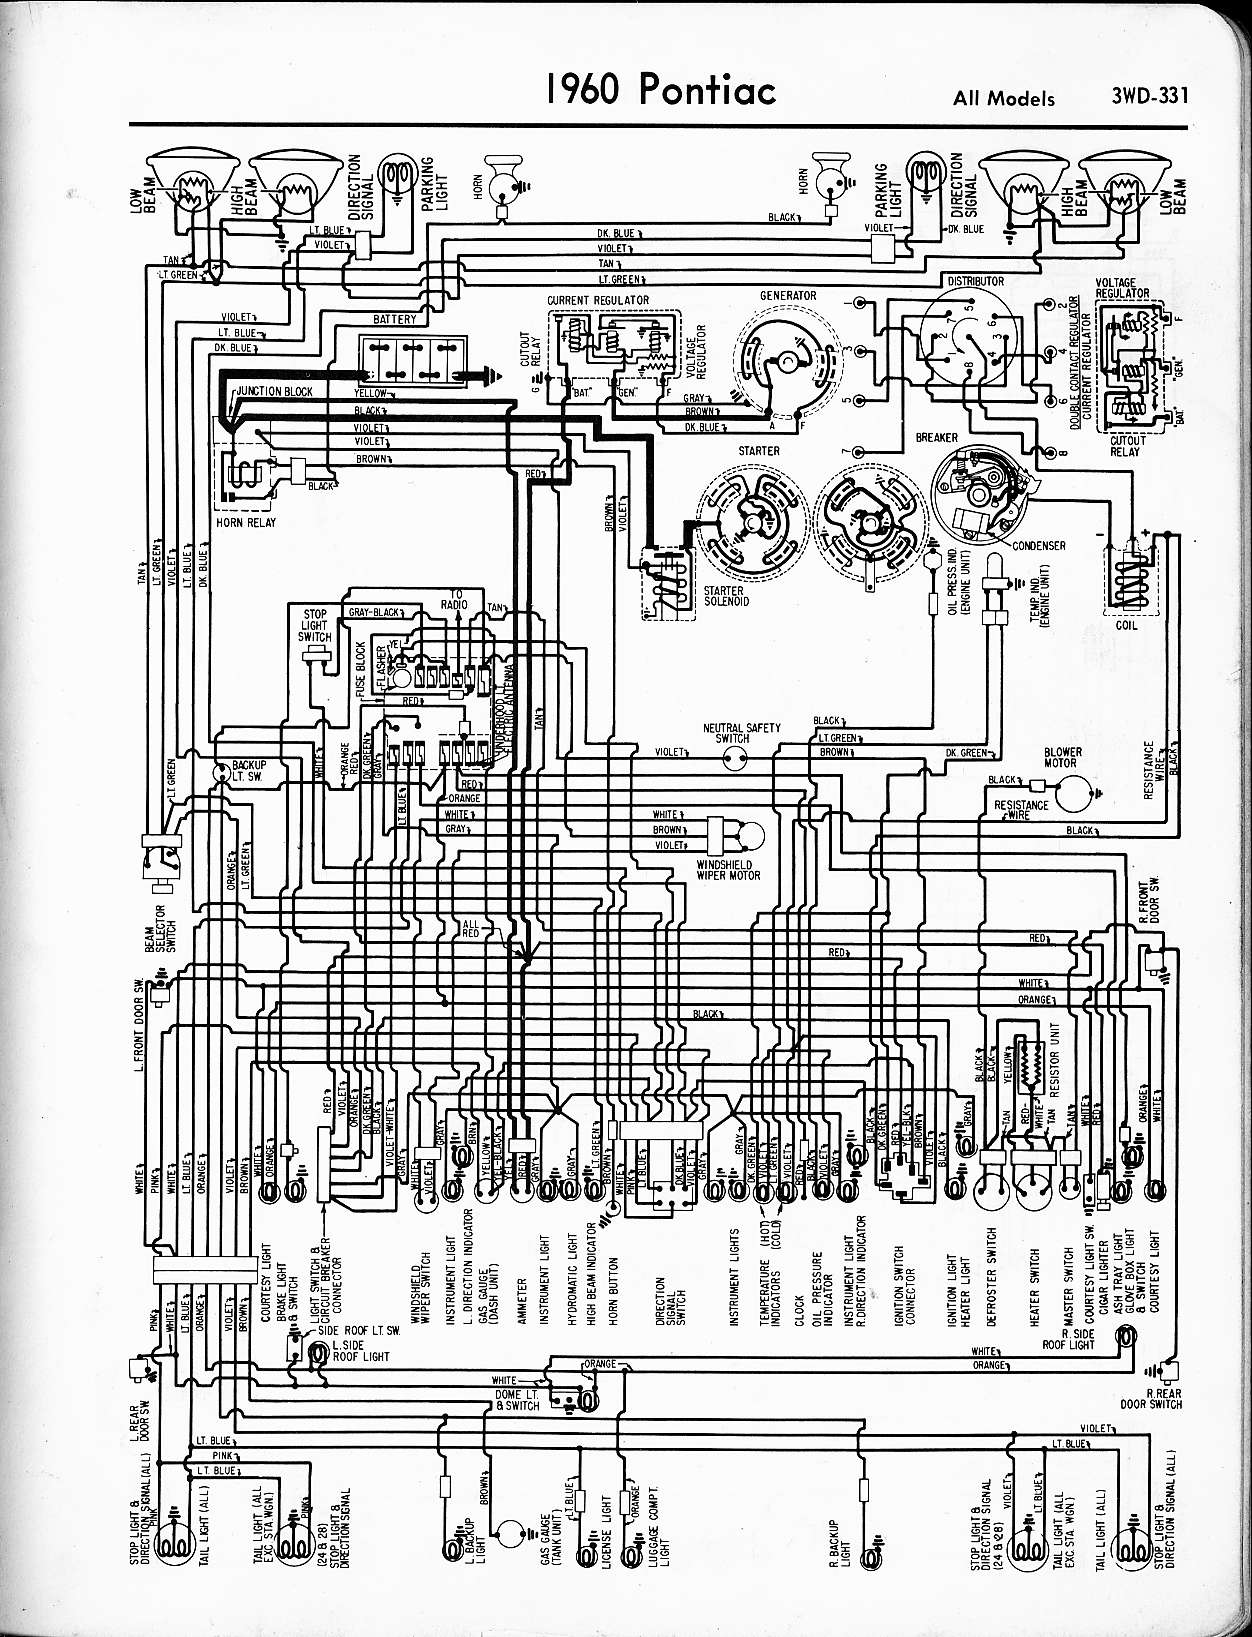 wallace racing wiring diagrams rh wallaceracing com 2000 pontiac montana  wiring schematics